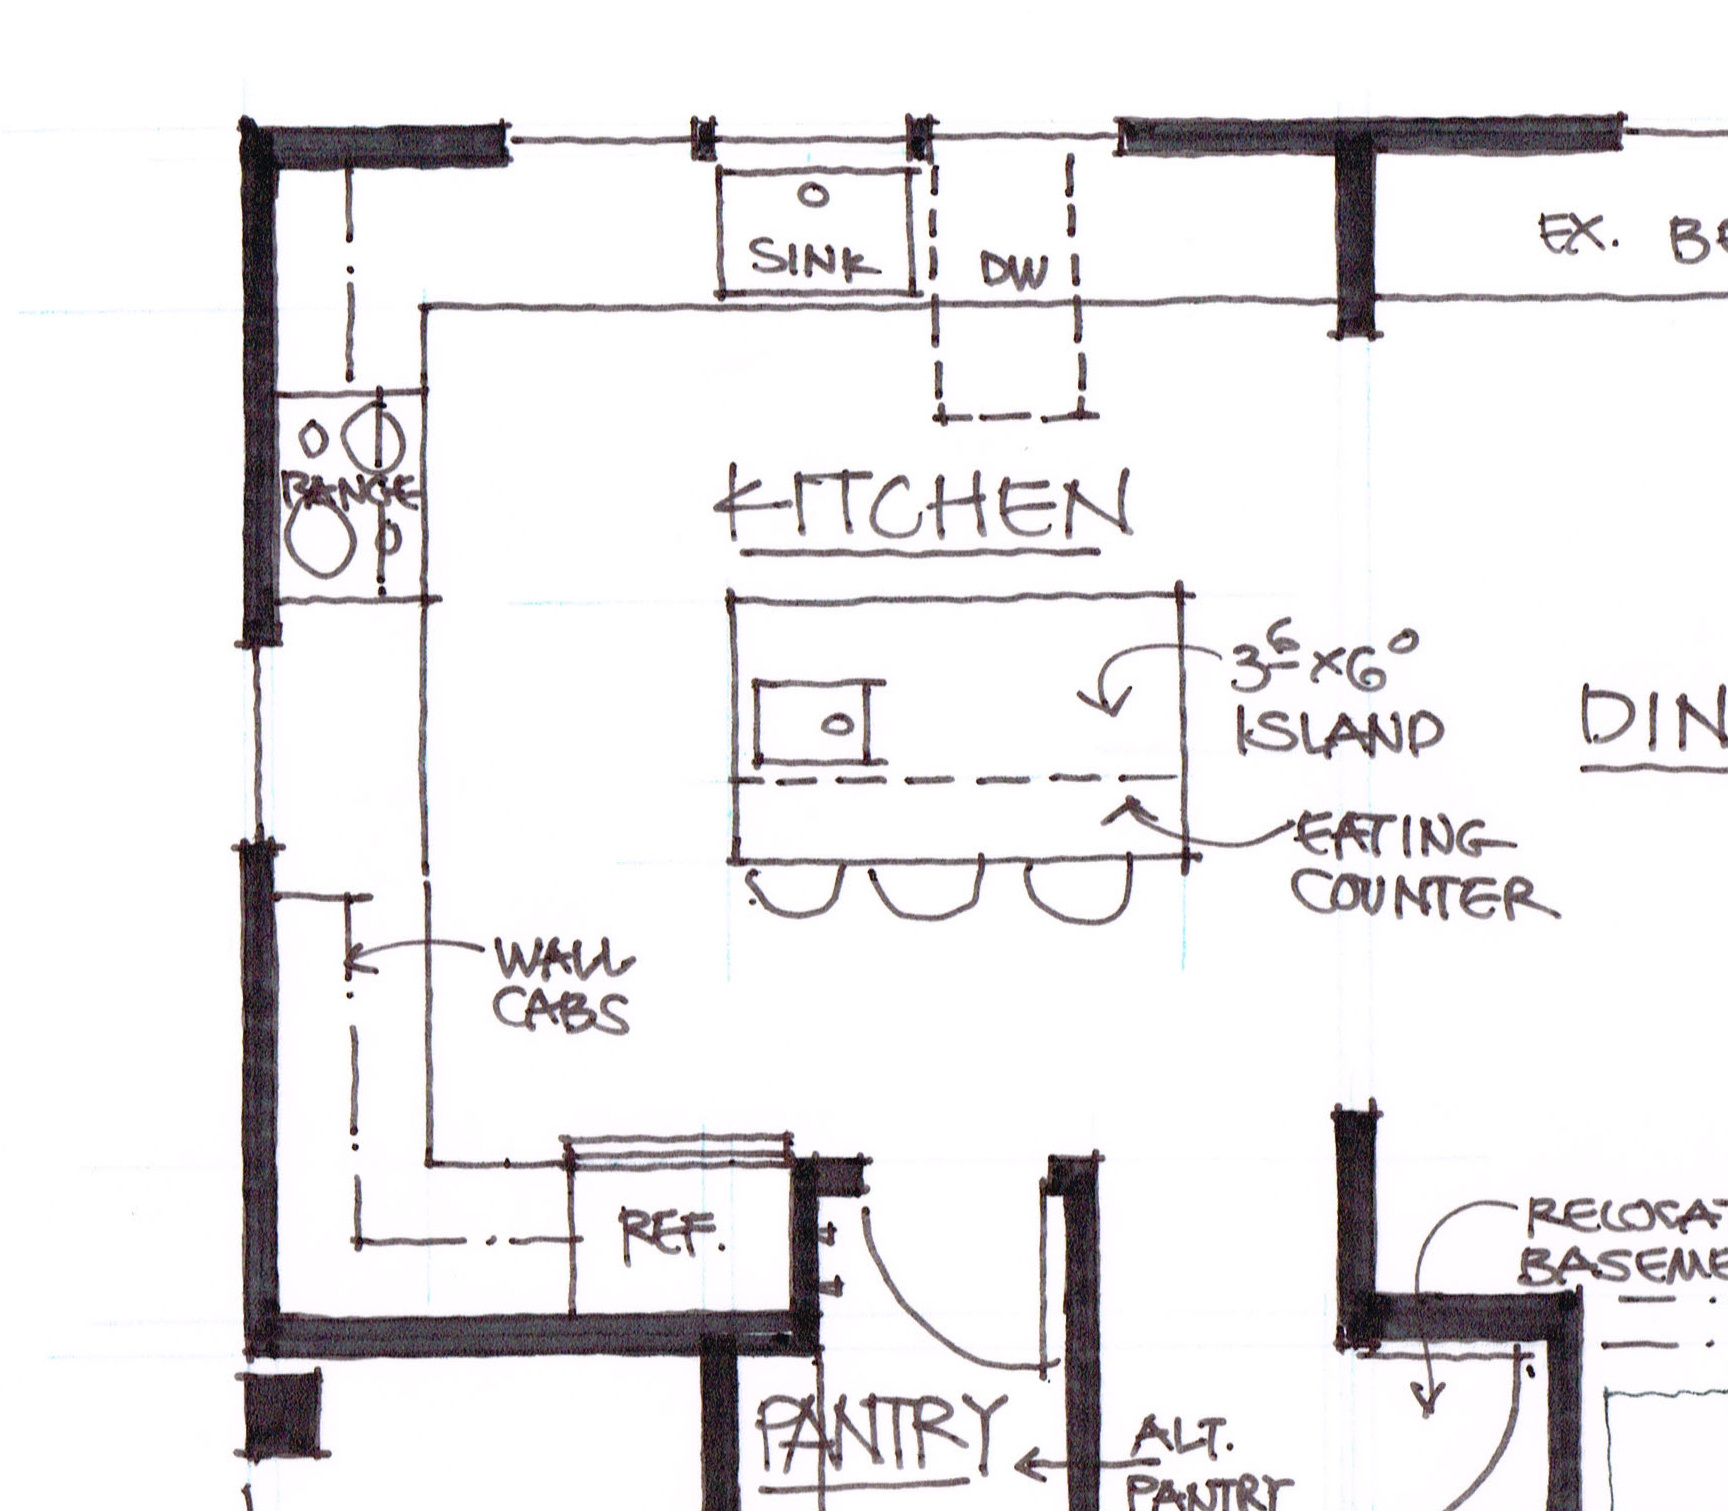 The glade a la carte kitchen let 39 s face the music for How to design a kitchen floor plan